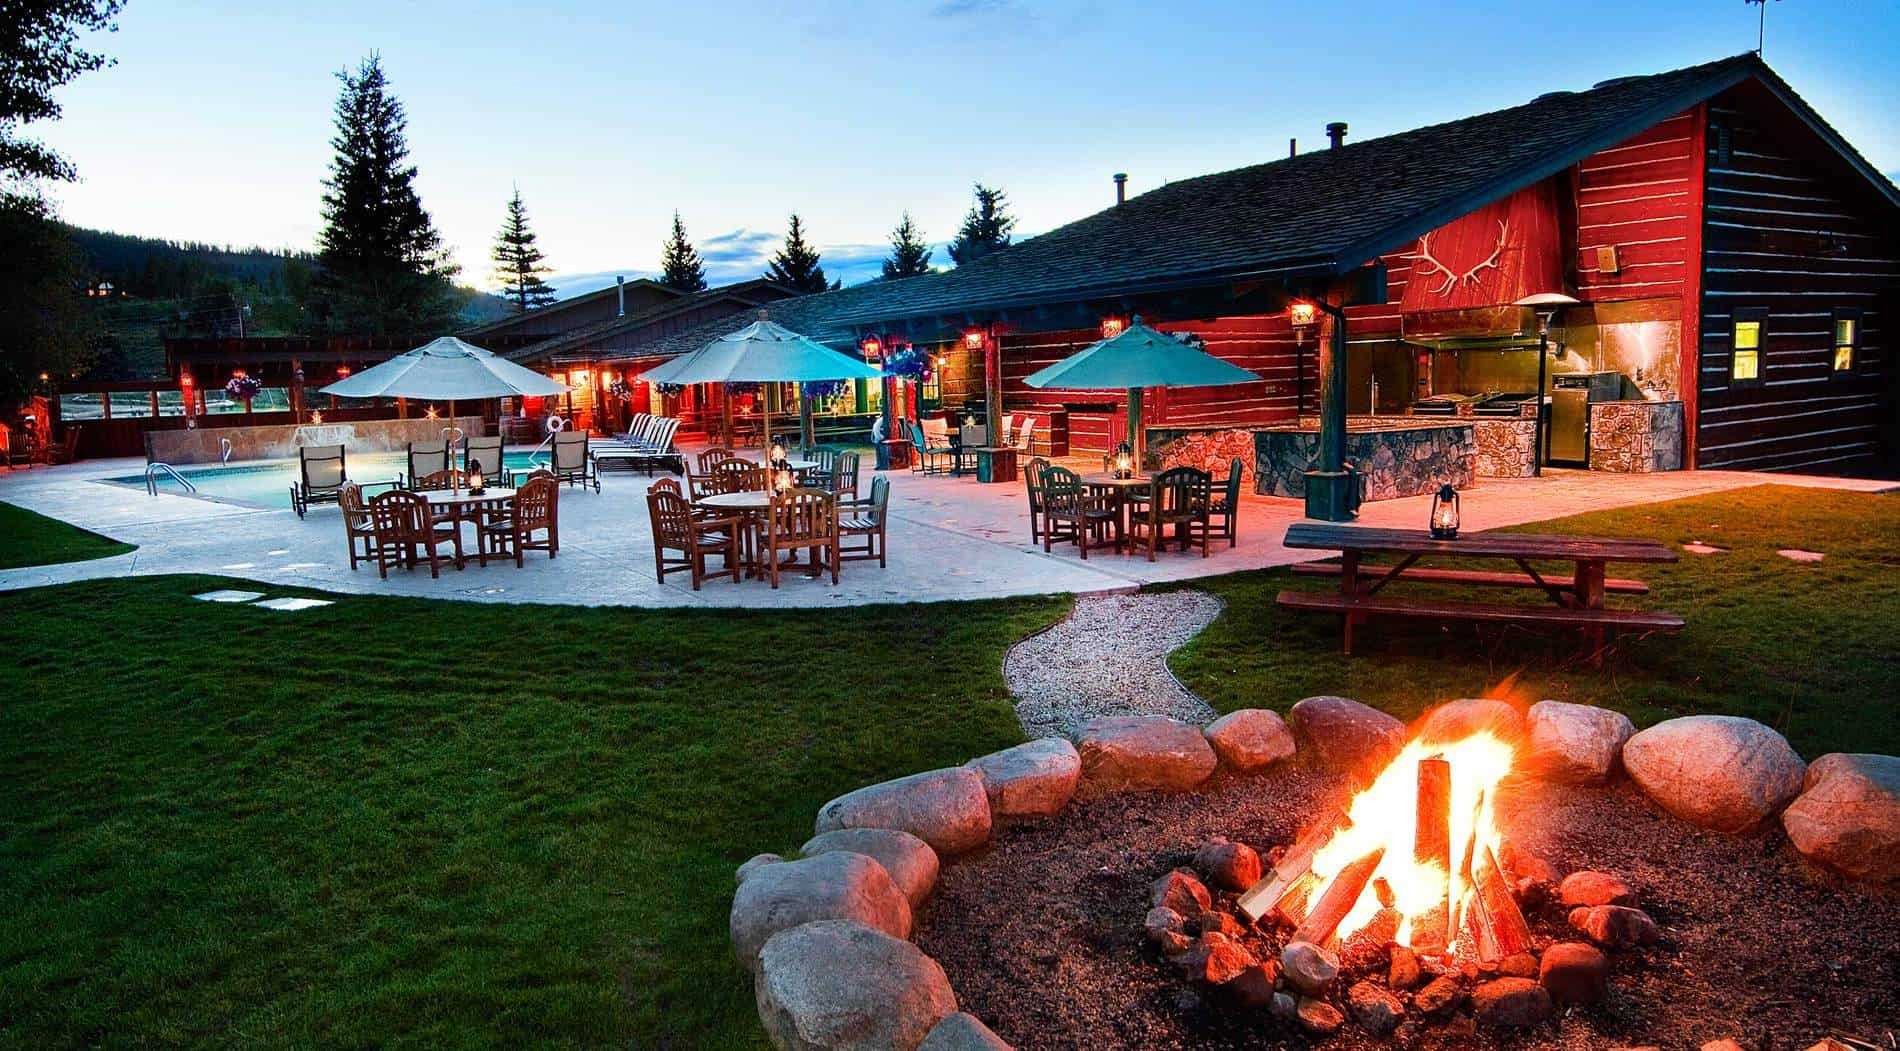 patio area with fire pit